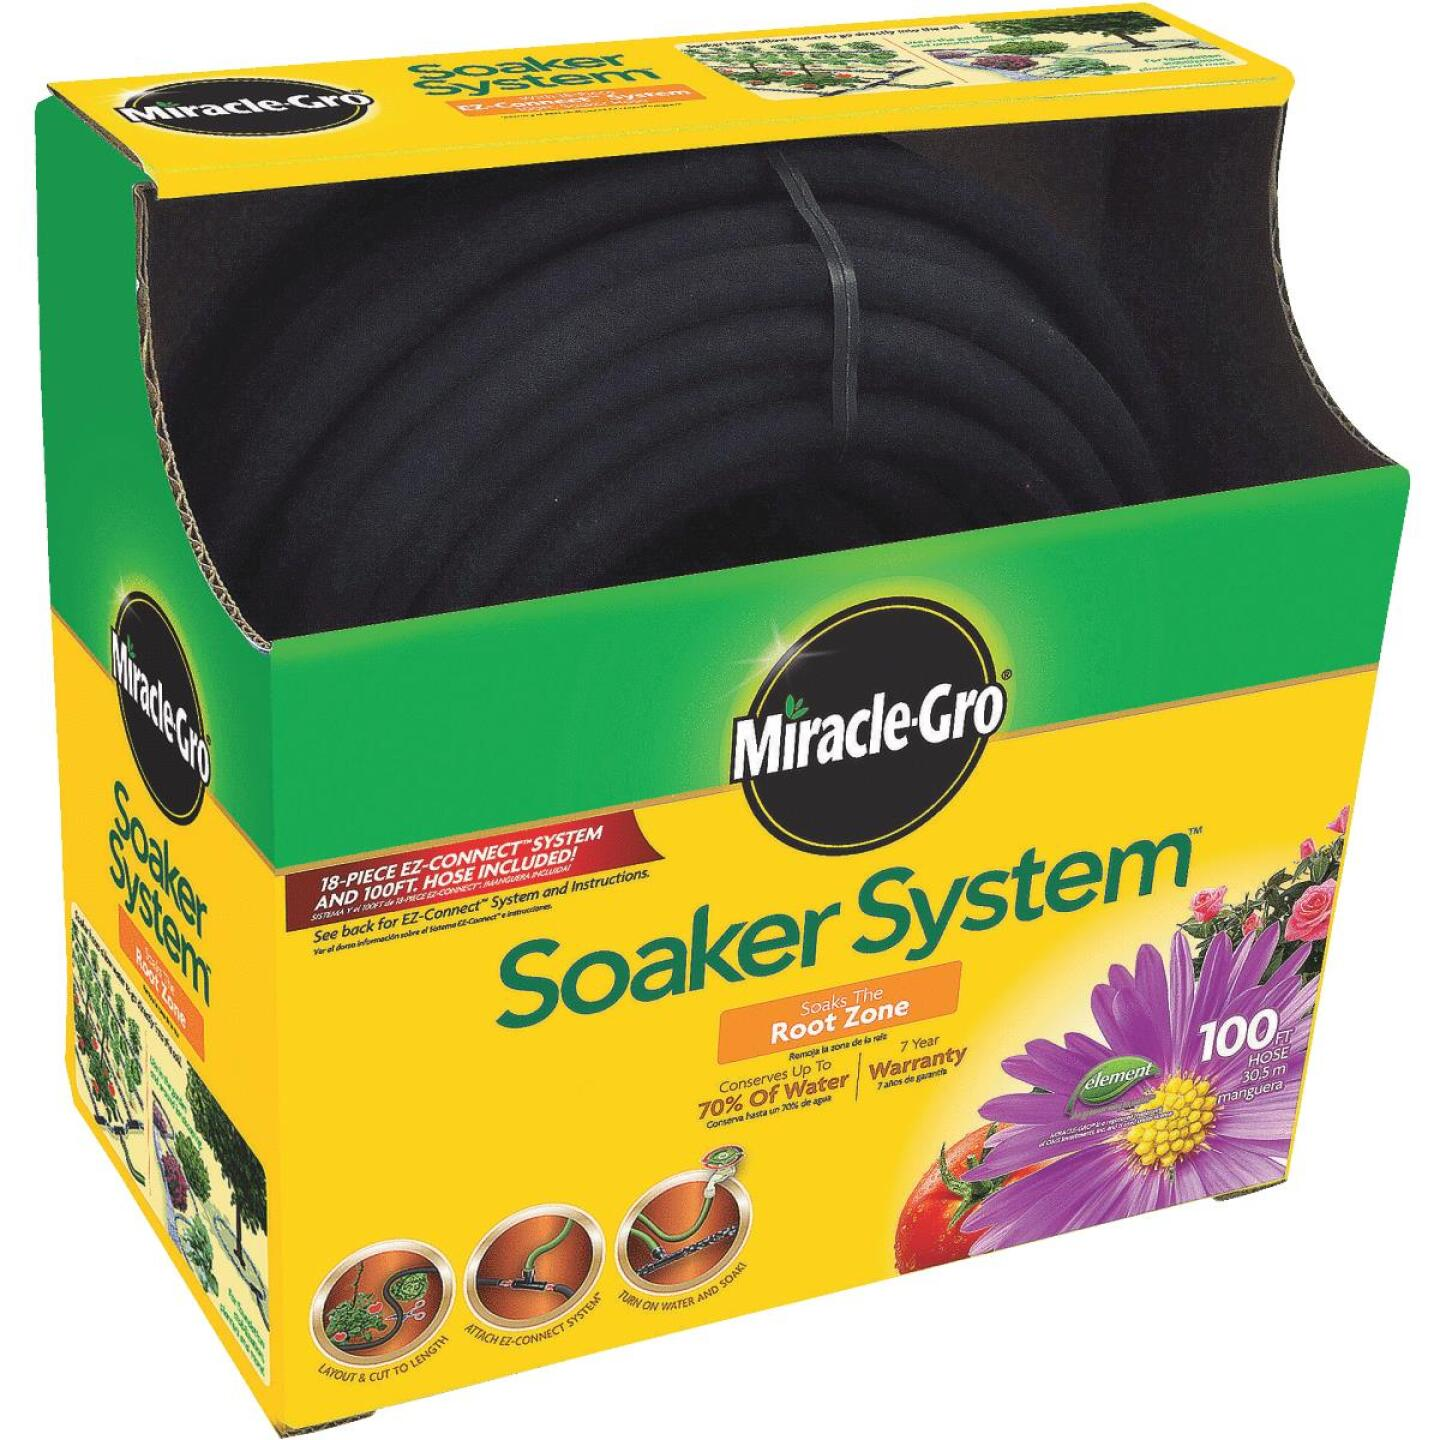 Miracle-Gro SoakerPRO Advanced E-Z Connect 3/8 In. Dia. x 100 Ft. L. Drinking Water Safe Soaker Hose Image 2